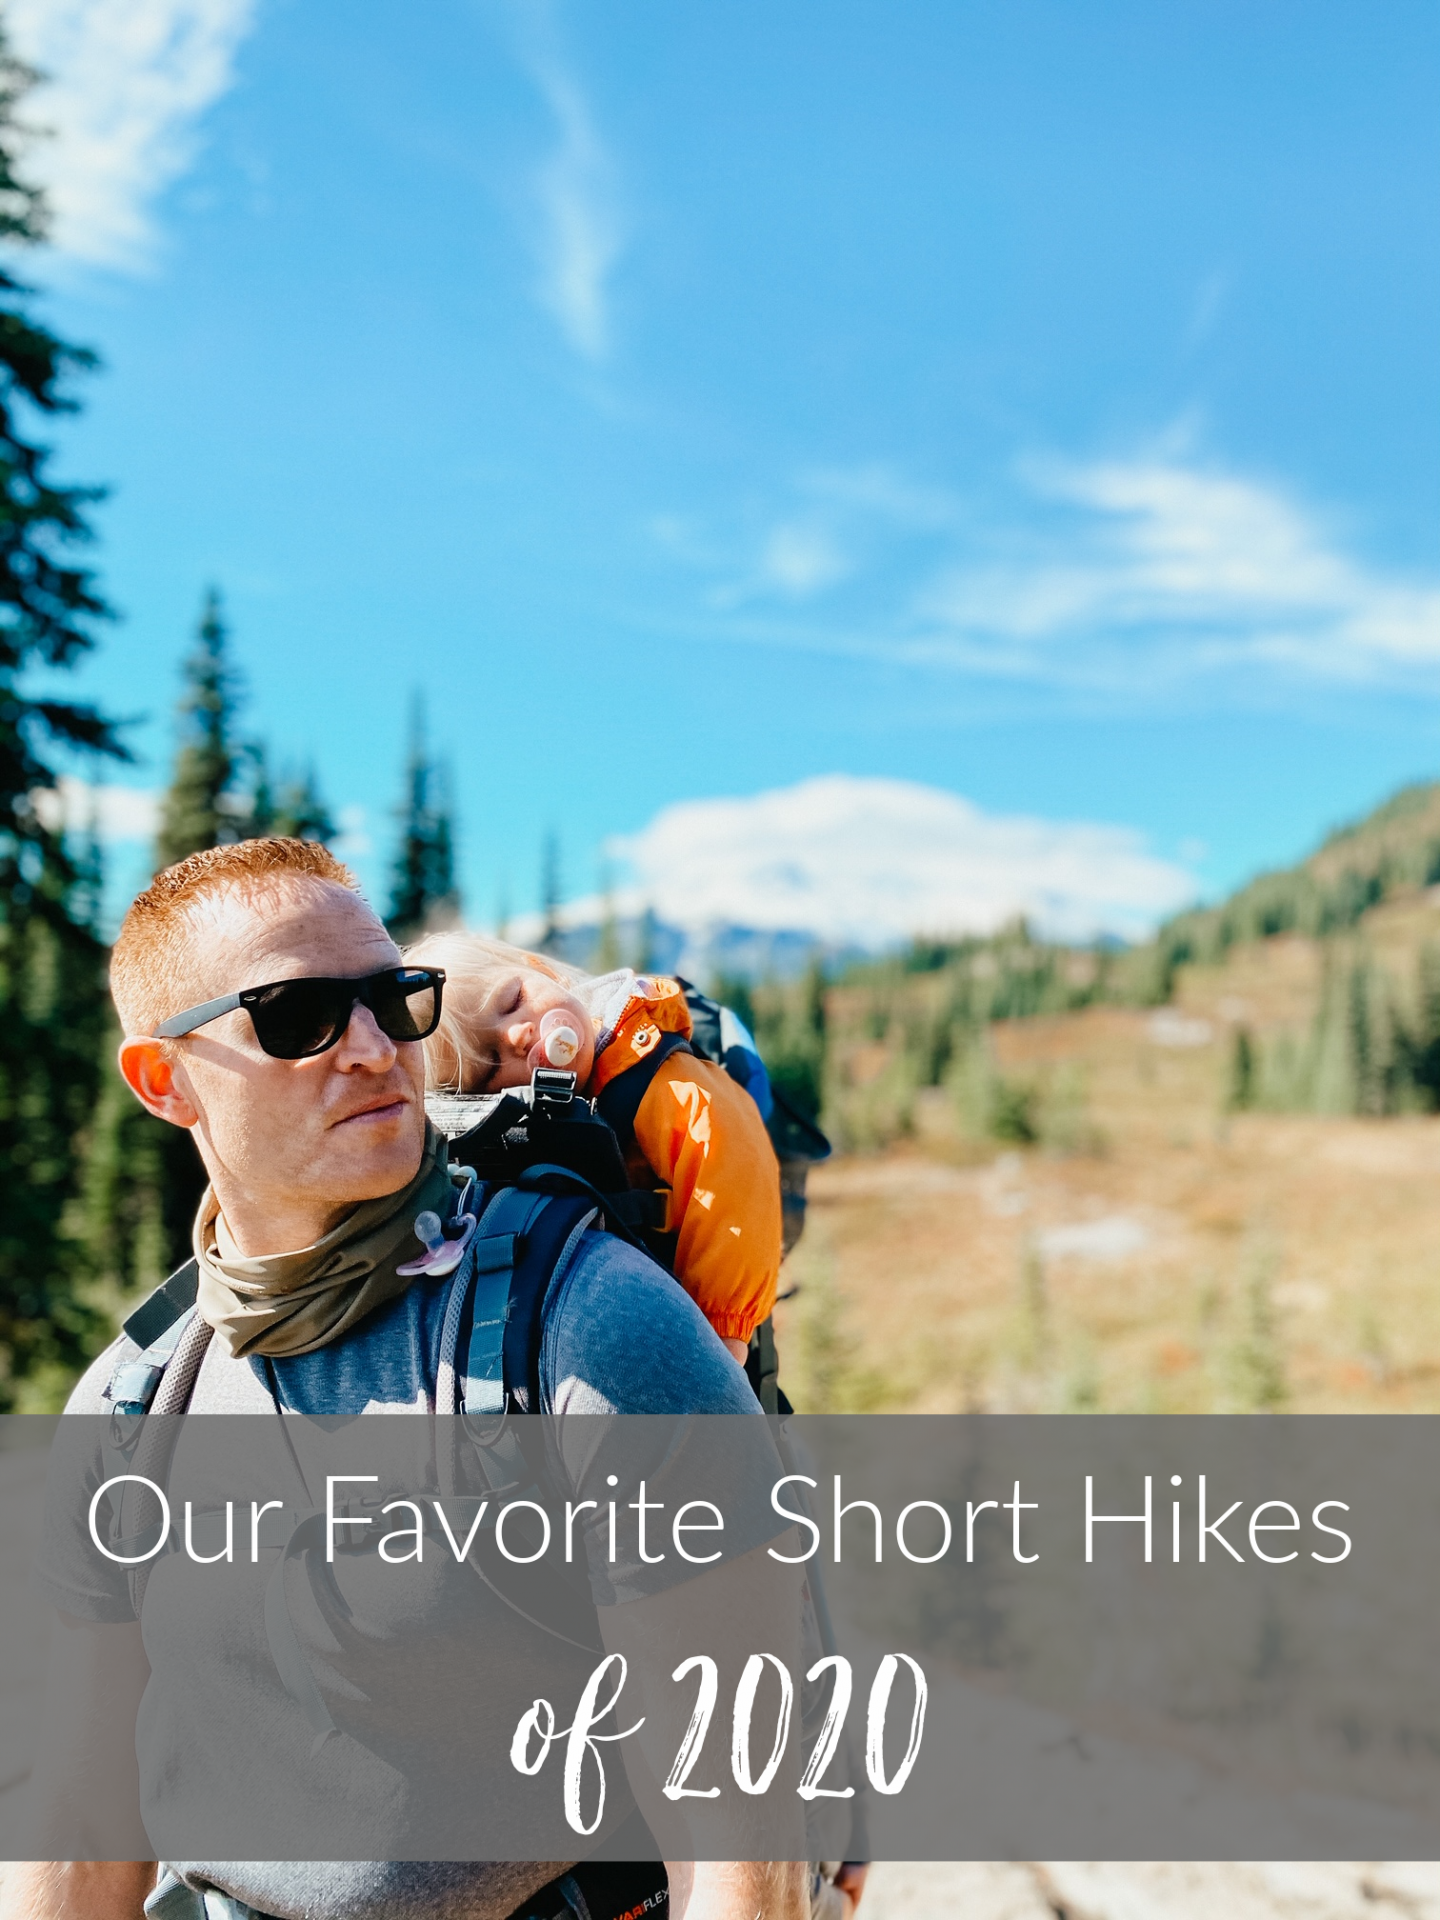 5 favorite short hikes of 2020